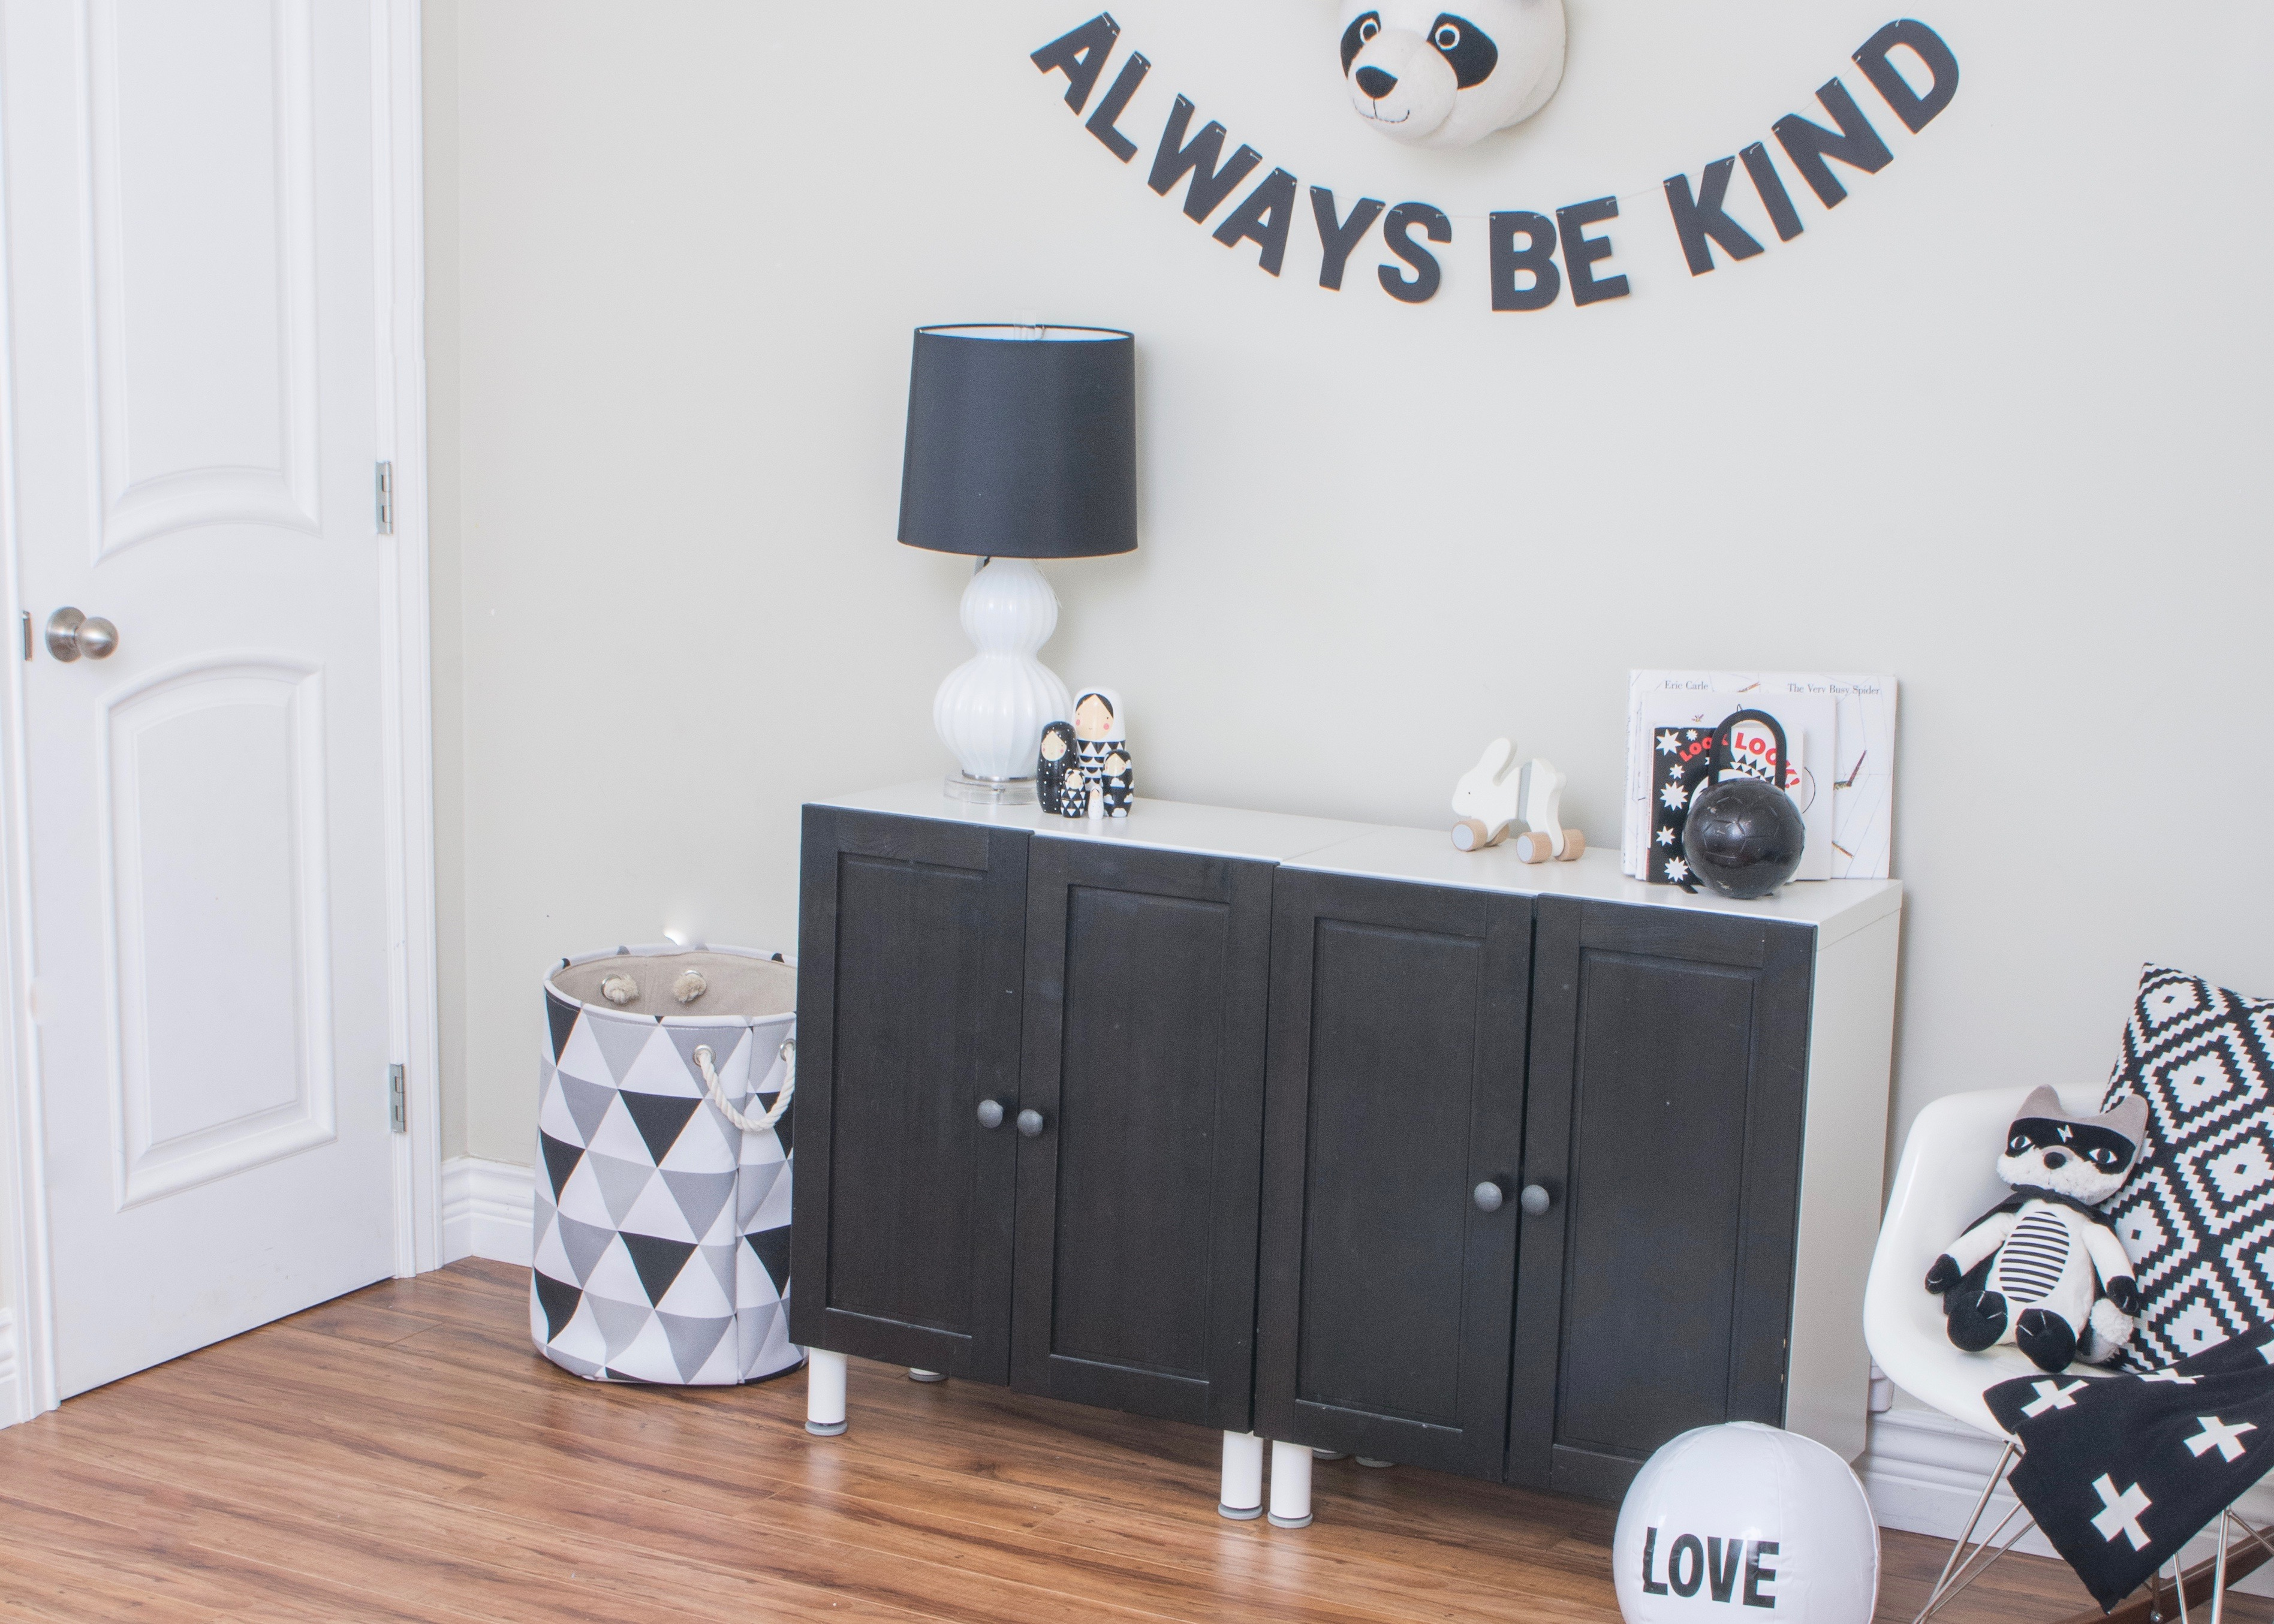 Monochrome Kid's Playroom and Gallery Wall